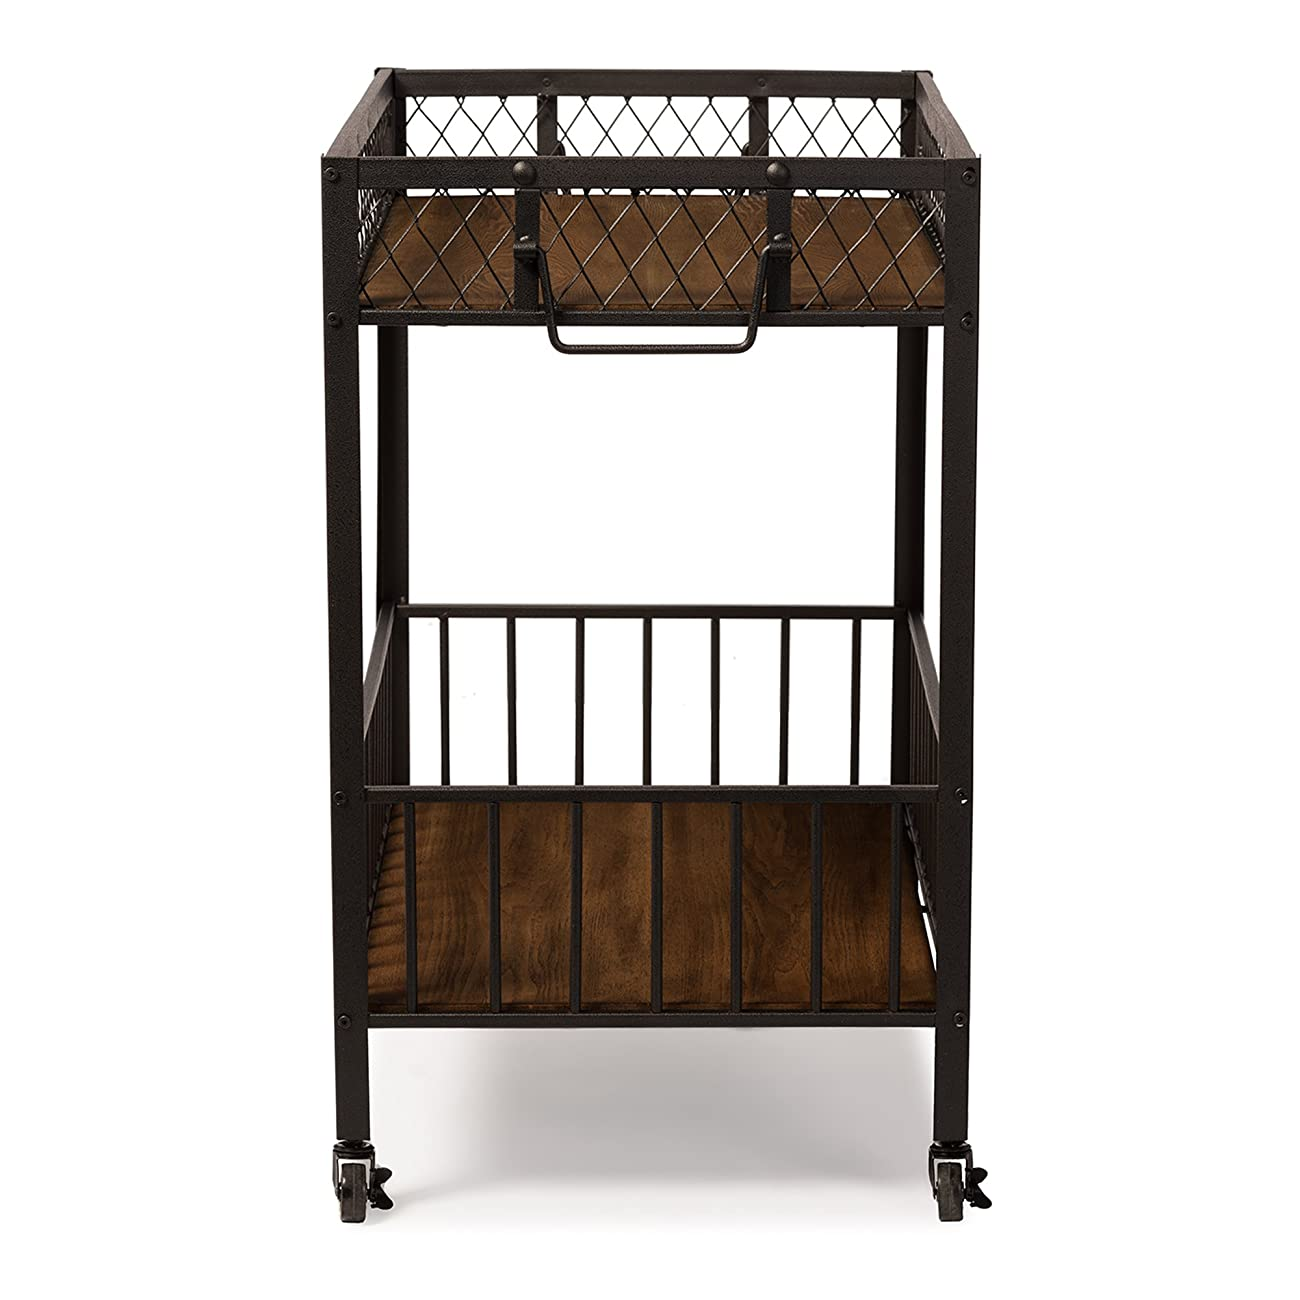 Baxton Studio Bentley Antiqued Vintage Industrial Metal & Wood Wheeled Kitchen Serving Cart 2